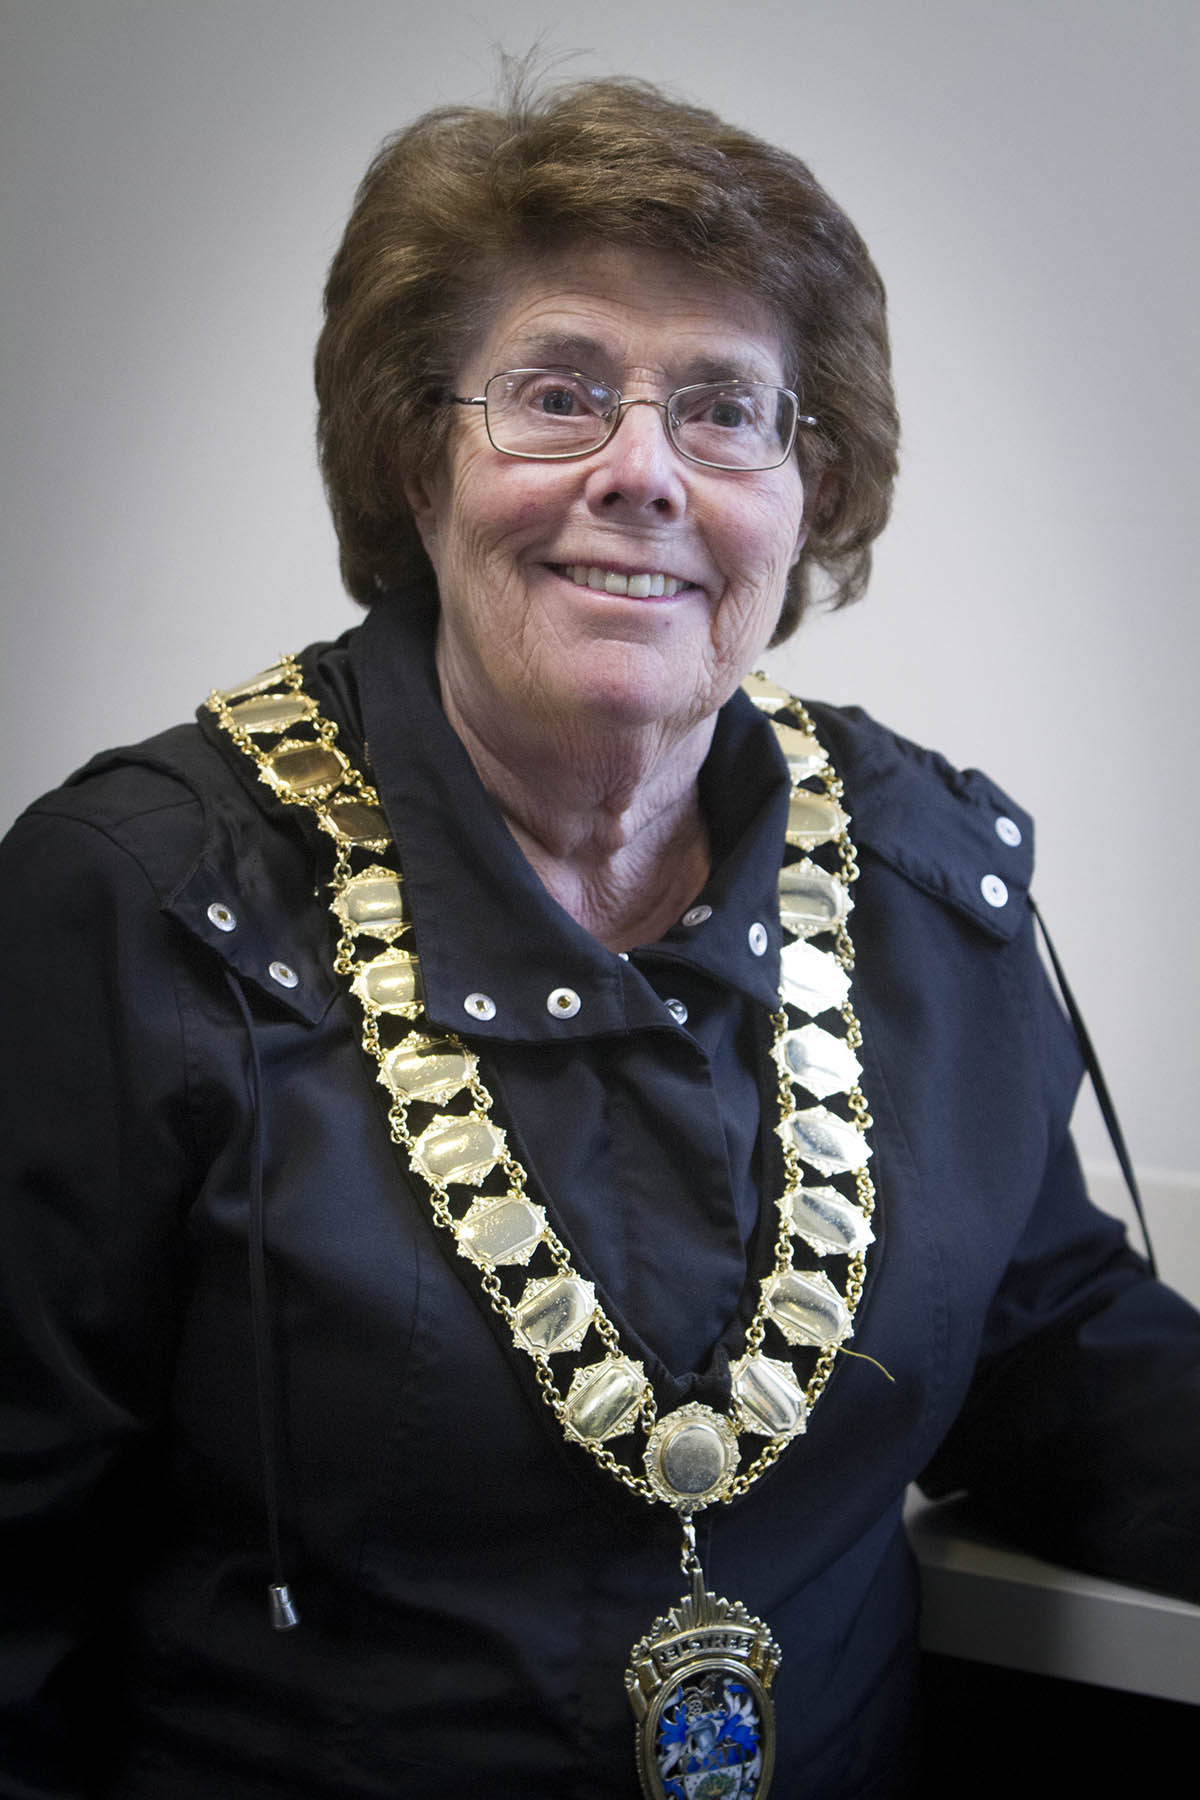 Councillor Pat Strack was elected as the new town mayor in the annual meeting last night